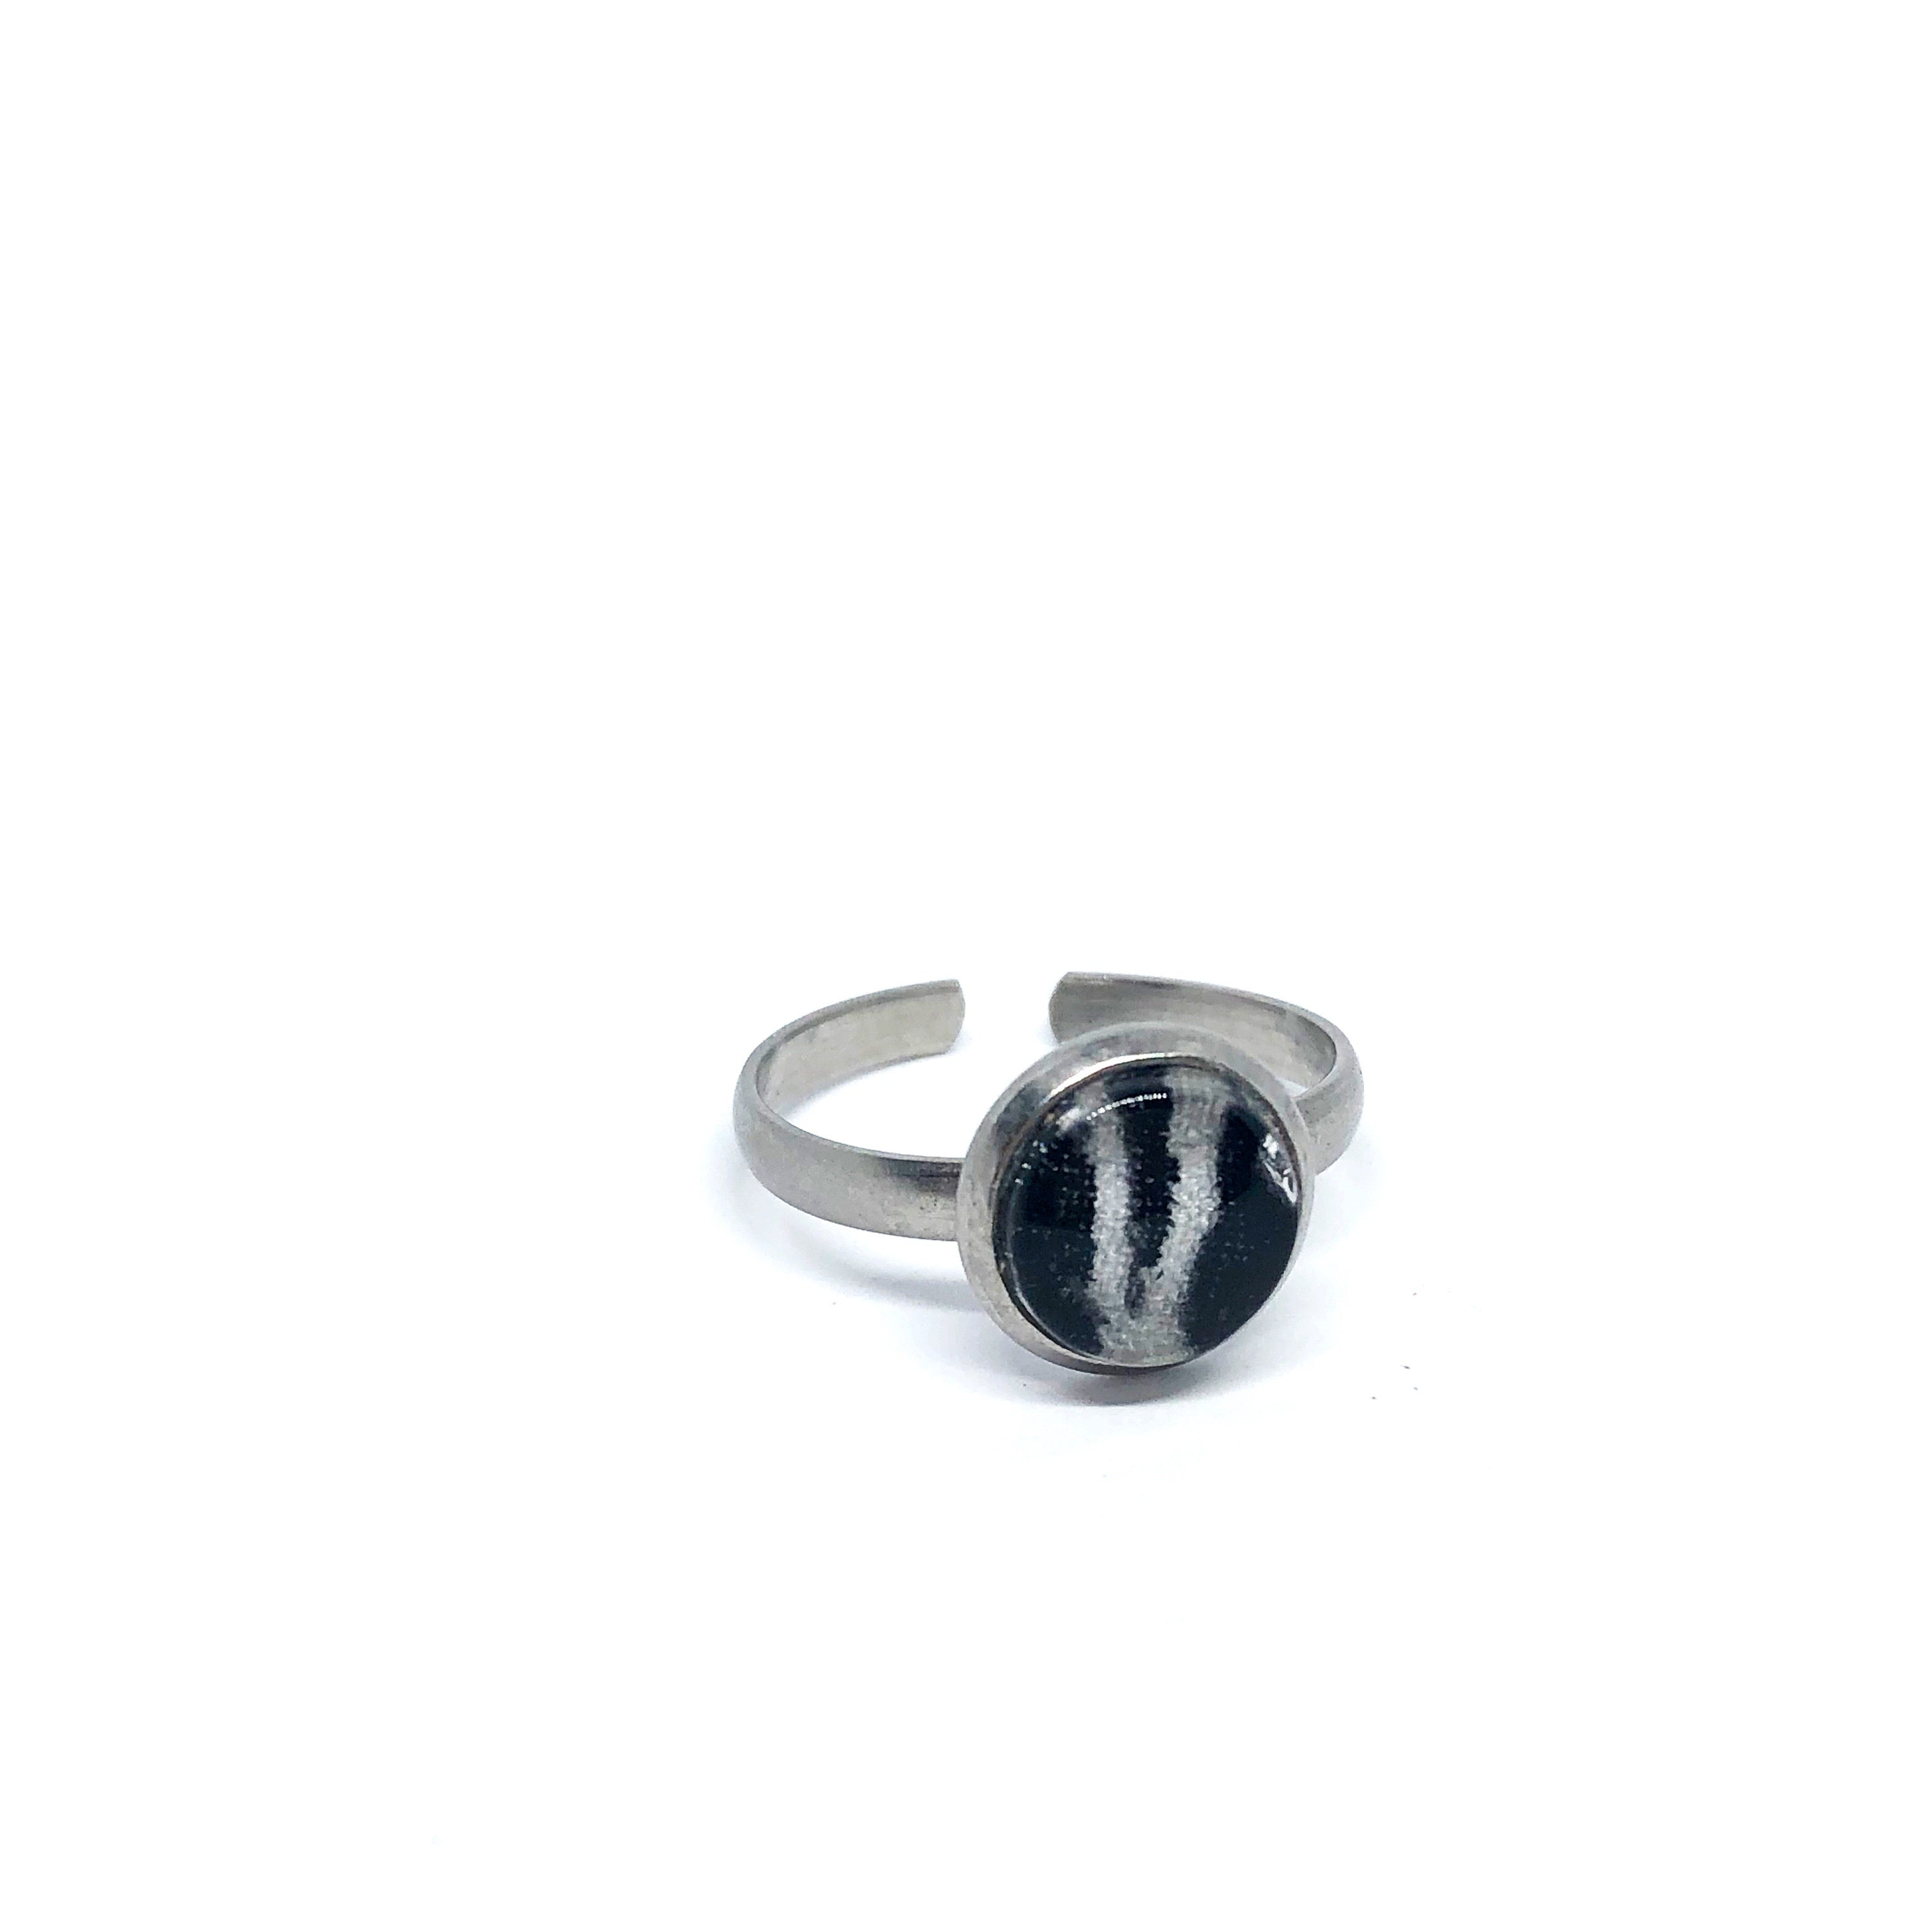 8mm Zebra adjustable ring